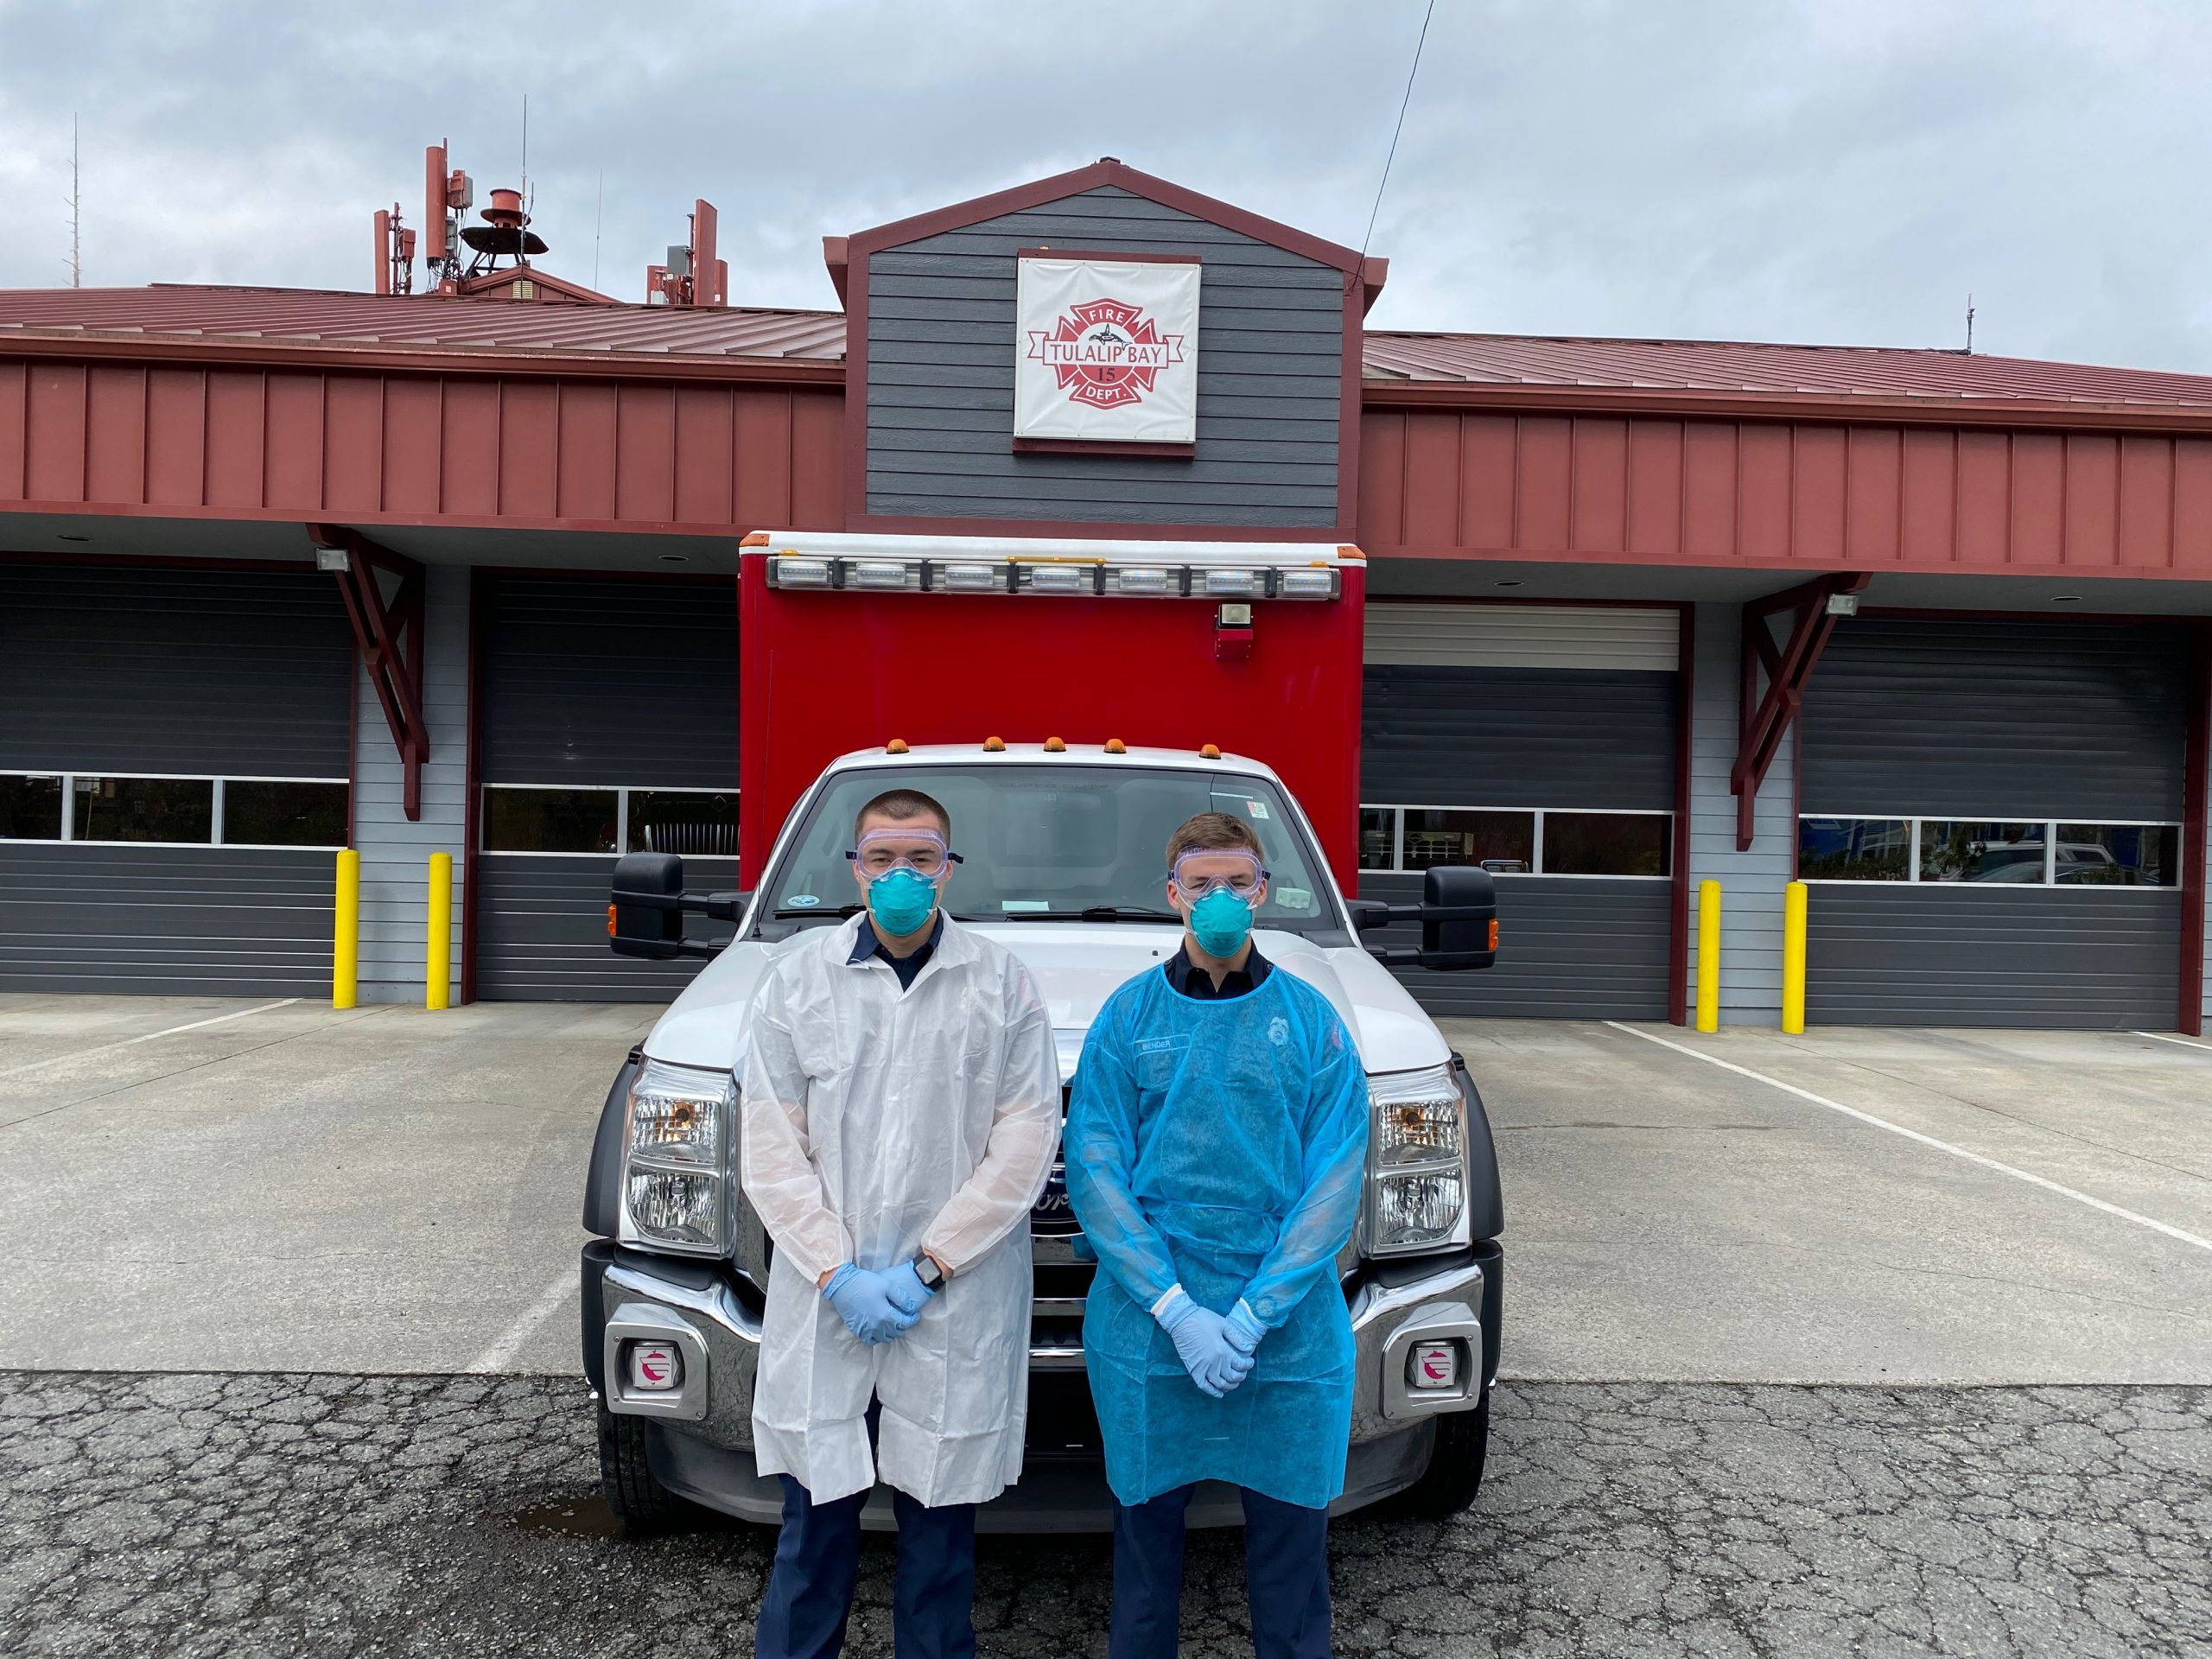 RELEASE: The Tulalip Tribes and Tulalip Bay Fire Department purchase backup emergency aid car to combat Coronavirus